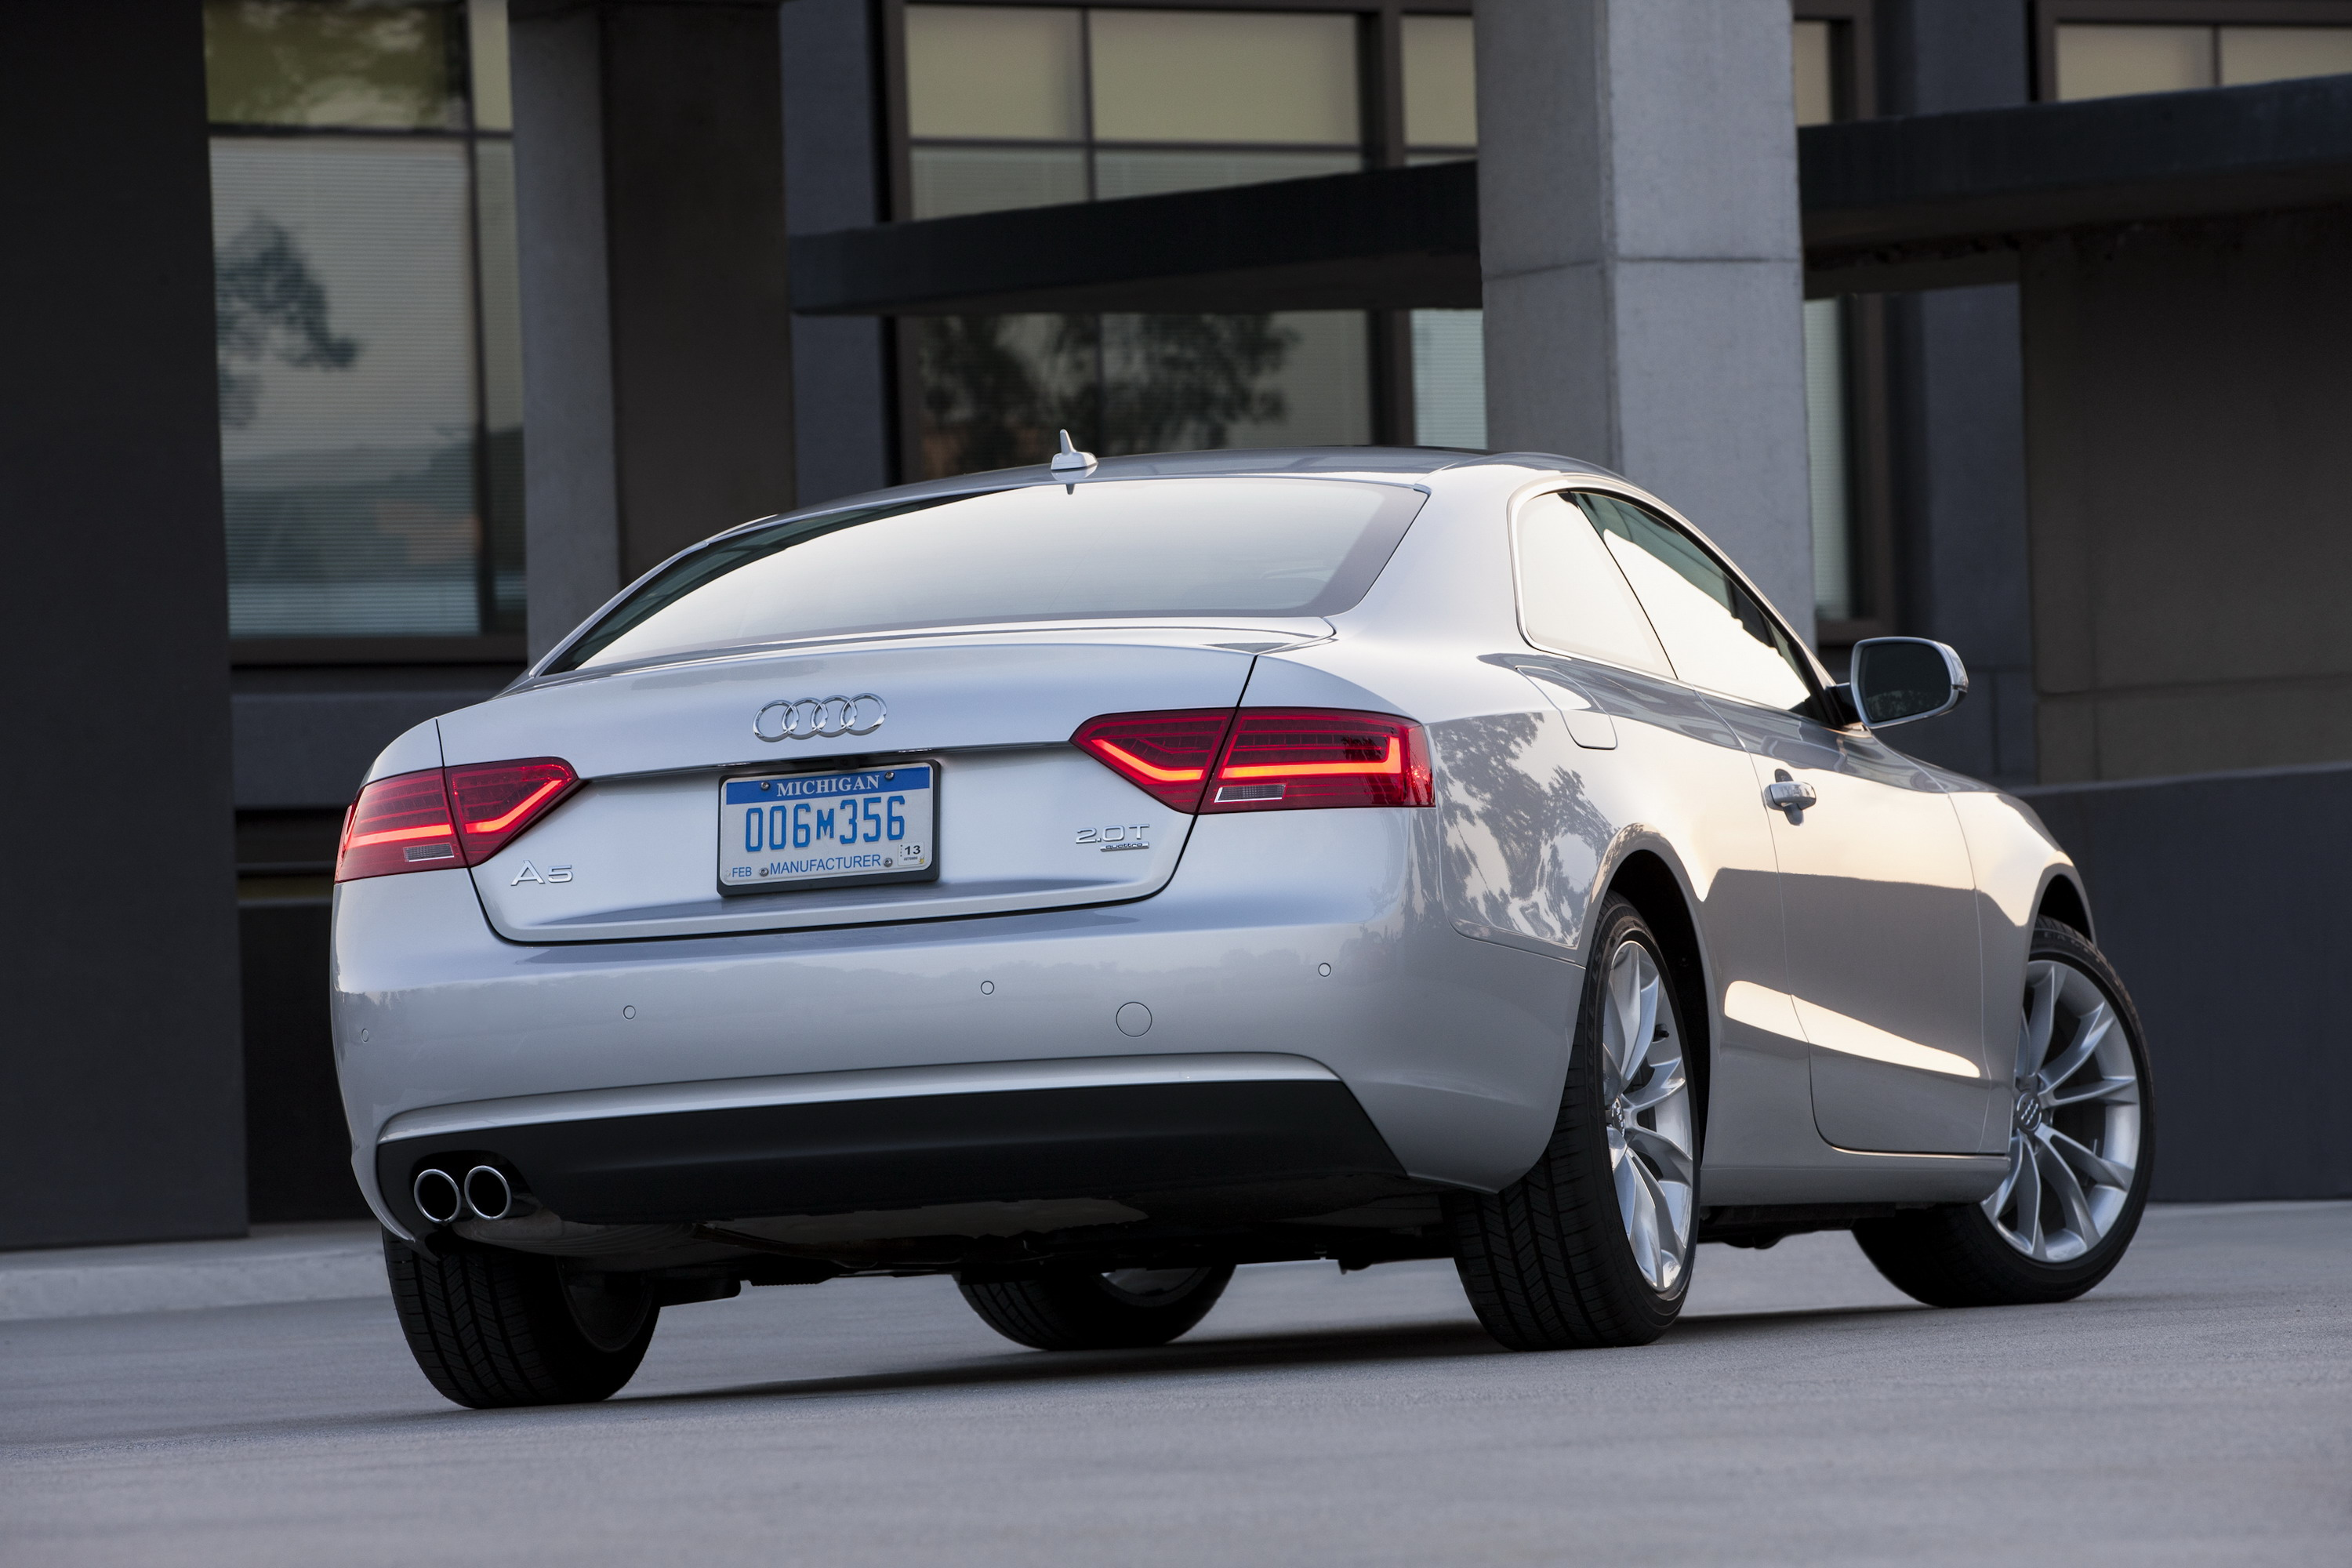 2014 - 2015 Audi A5 Coupe | Top Speed